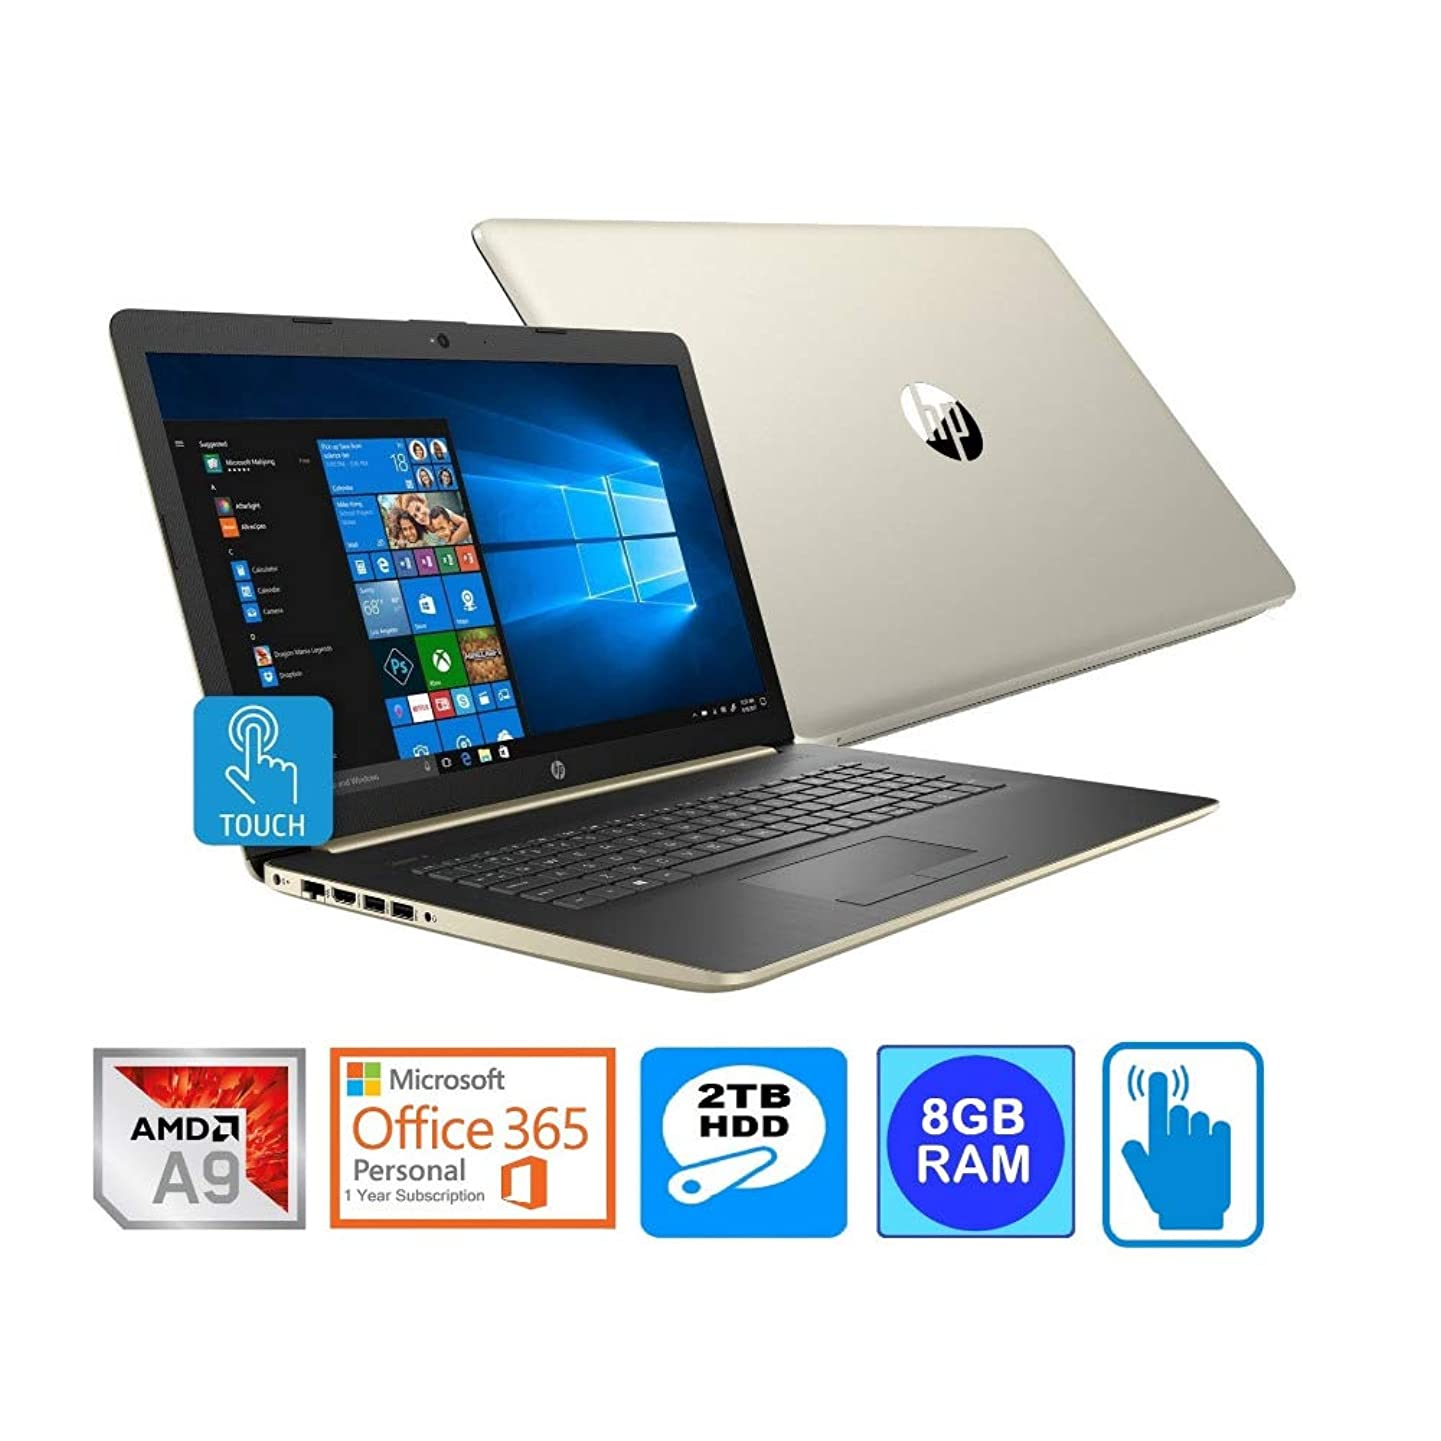 "HP Laptop 17 AMD A9-9425 8GB 2TB HDD 17.3"" HD+ Touch Screen Microsoft Office 365 1-Year (Renewed)"